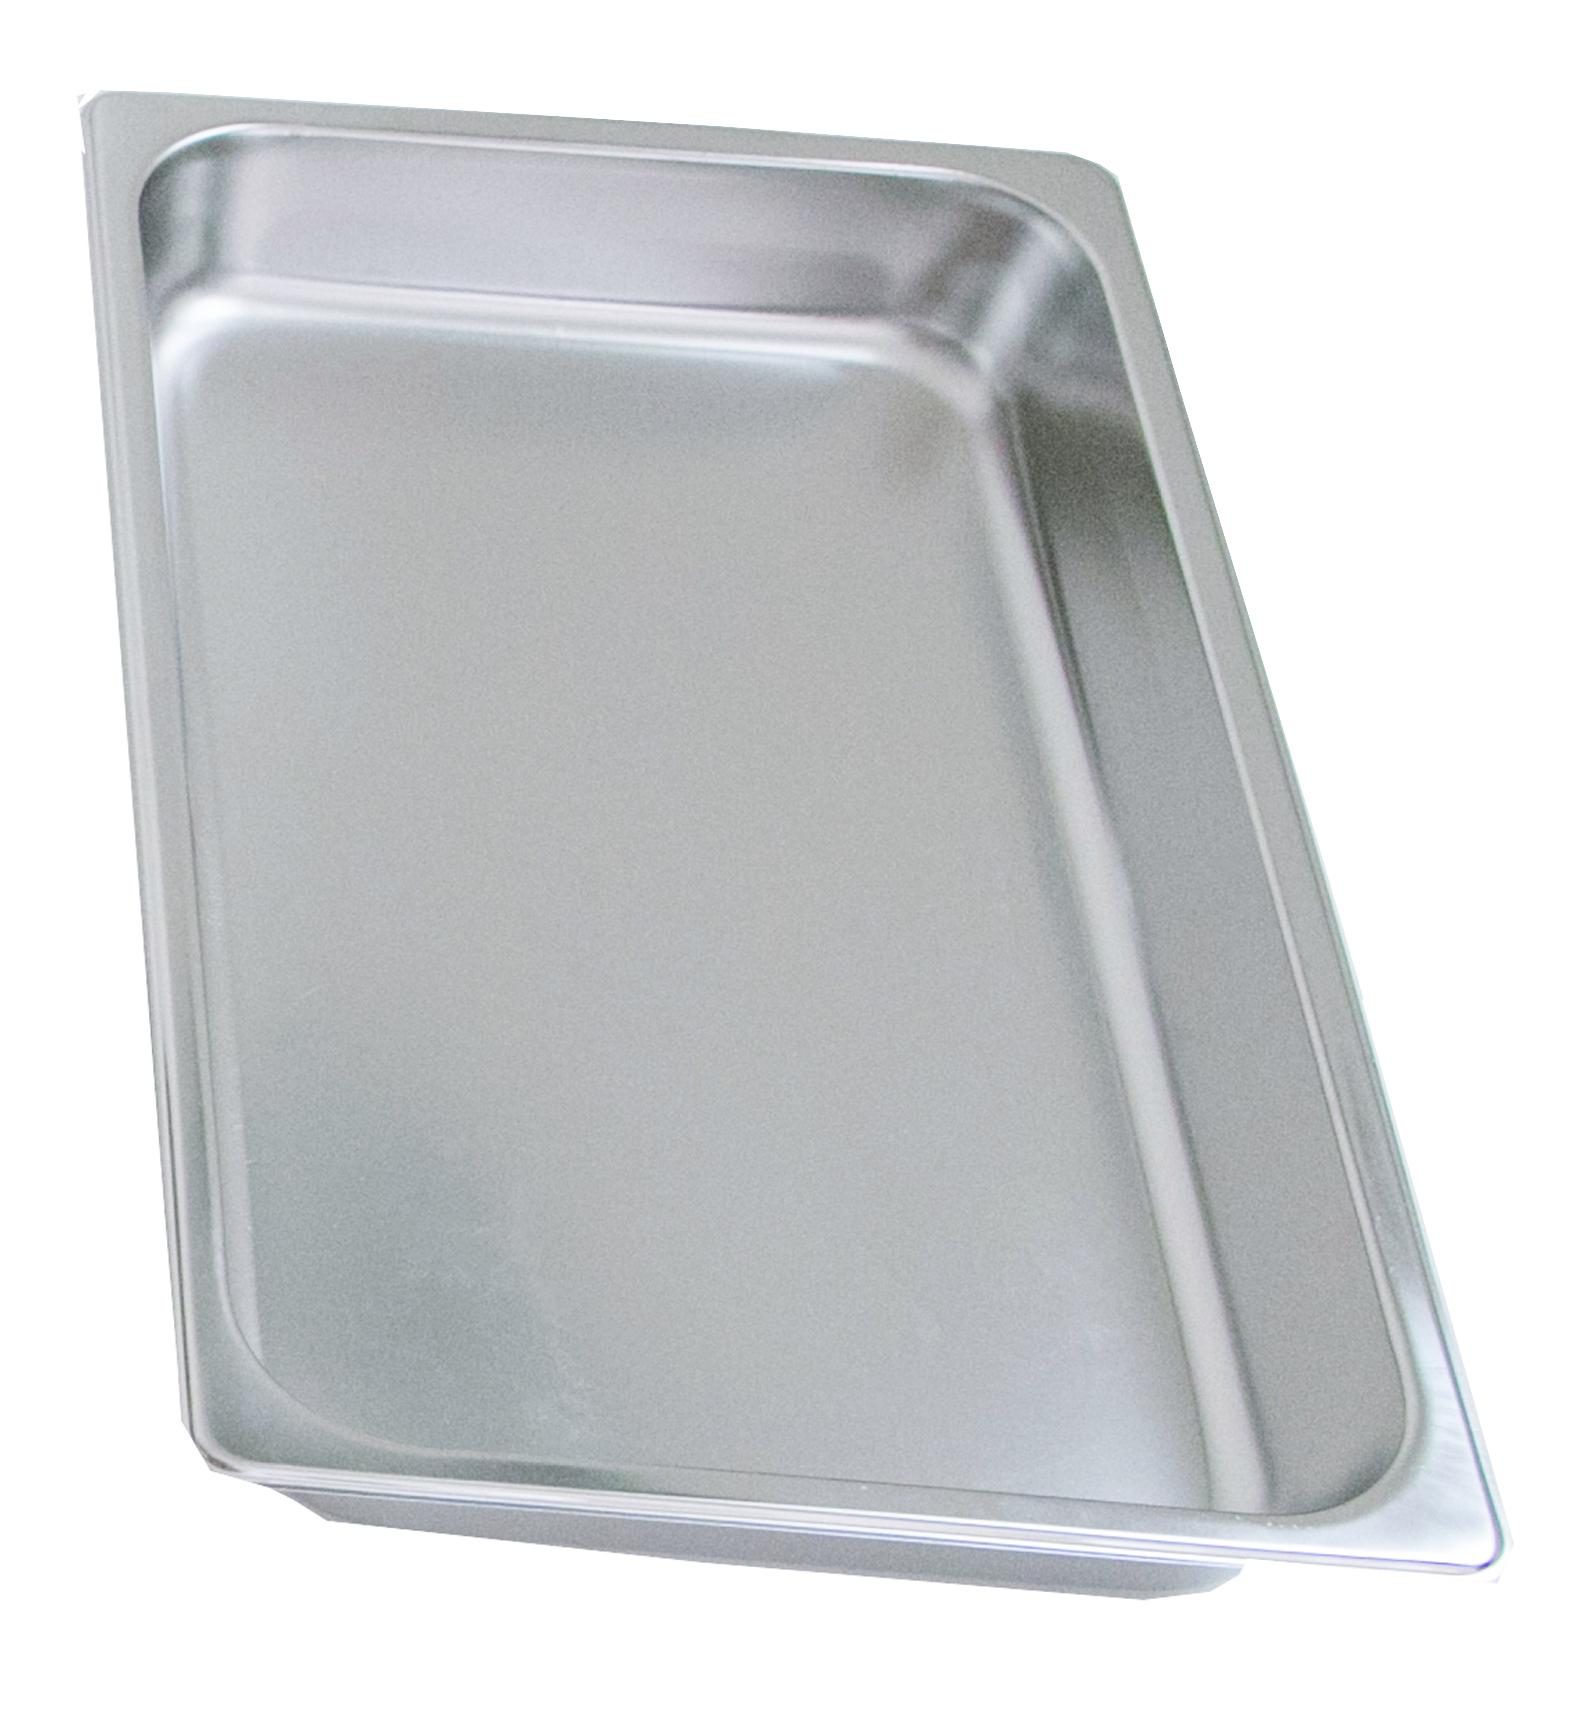 Buy Sell Cheapest 12x15 Mm Food Best Quality Product Deals Cp Petfood Takari Fish 2mm Mix 500gr Homemaster Gastronom Pan Stainless 1 530x325x65mm Fsp53032565